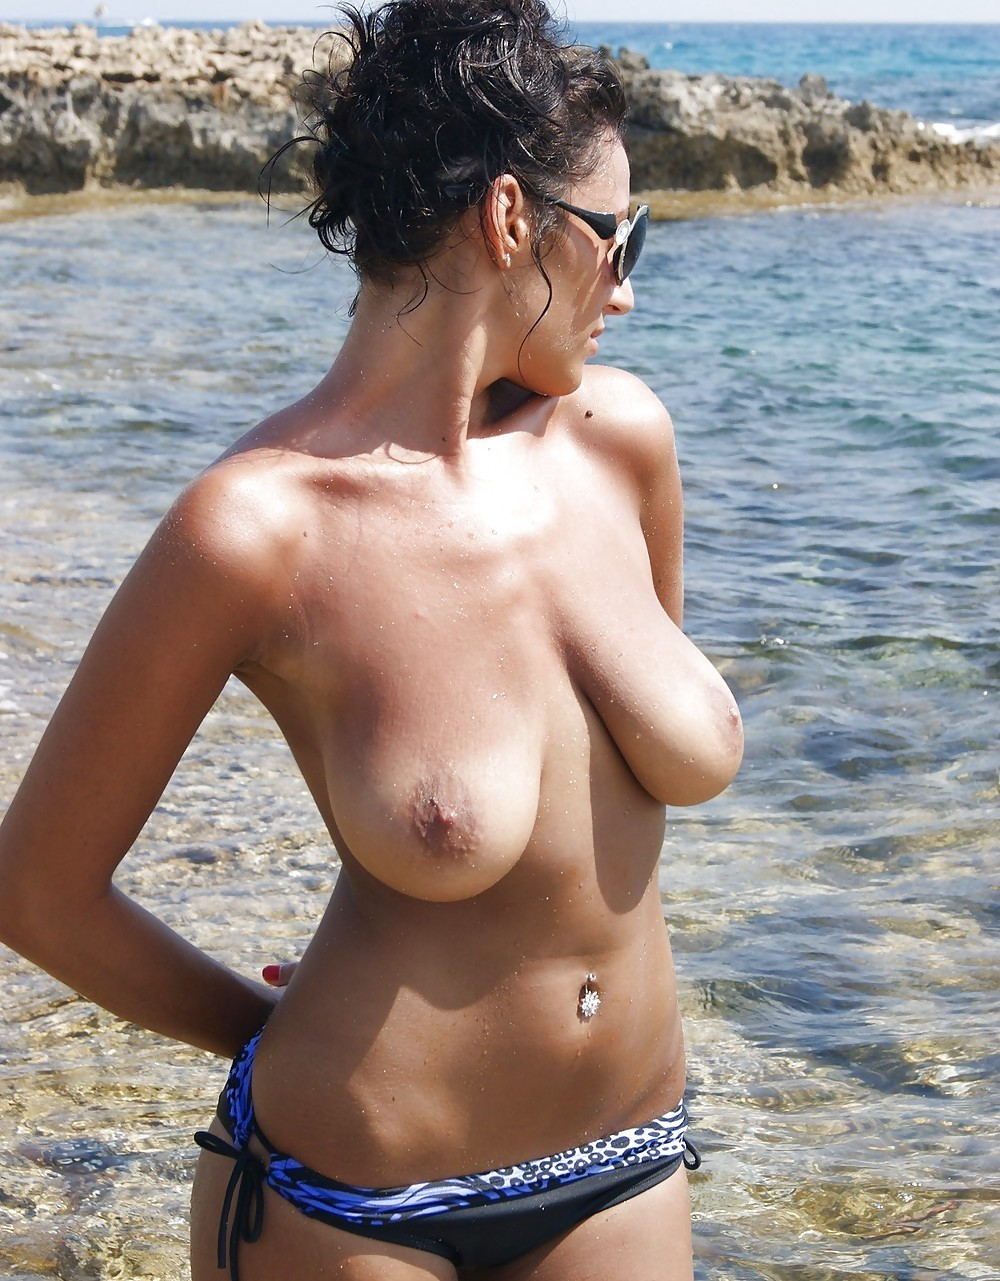 Huge Tits At The Beach